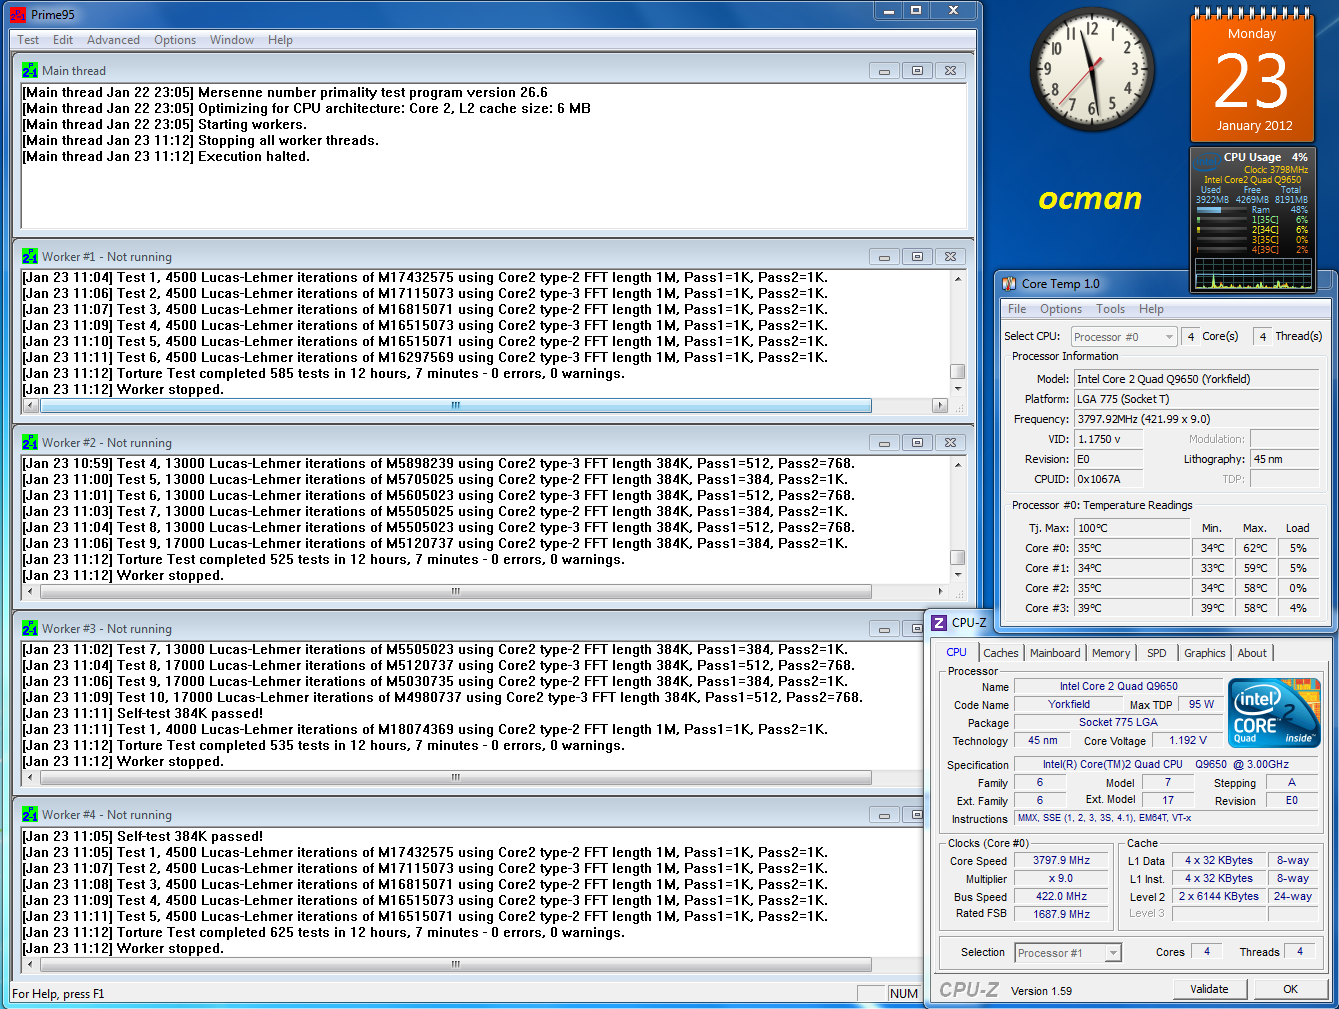 Passed 12hr P95 Large FFT @ 3.8GHz.png